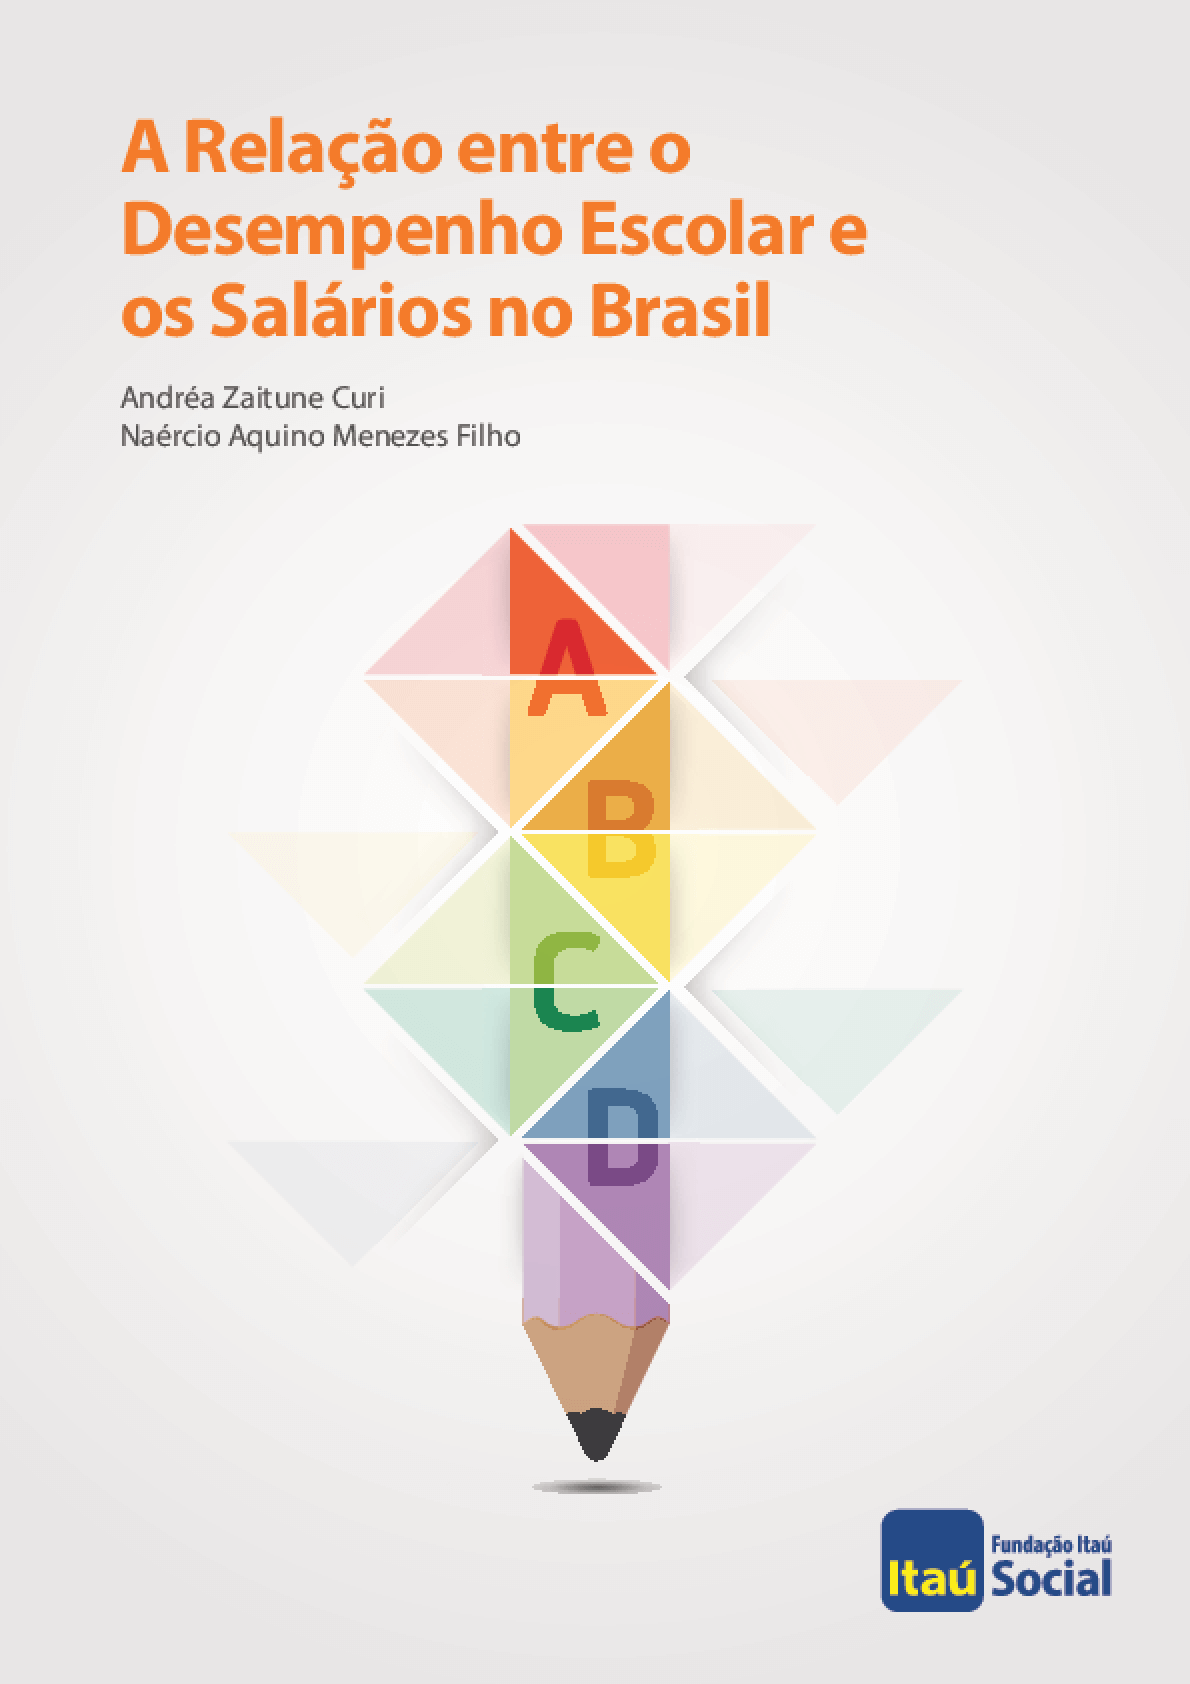 A relação entre o desempenho escolar e os salários no Brasil